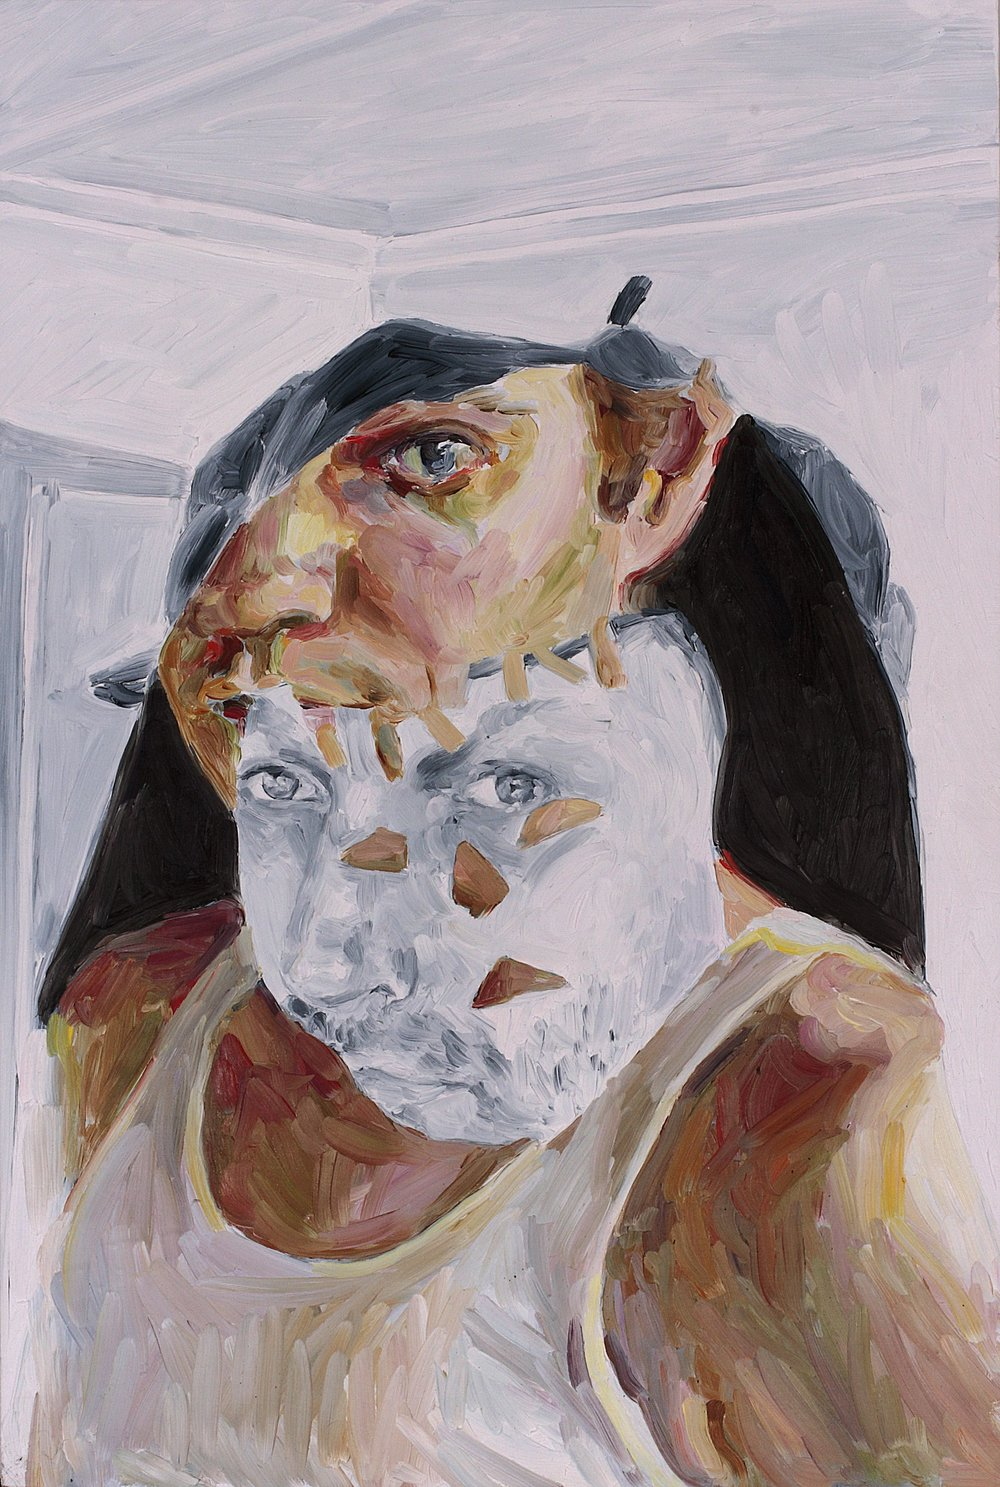 Nicholas Chambers and David M Thomas, oil on board, 60 x 40 cm, 2008.